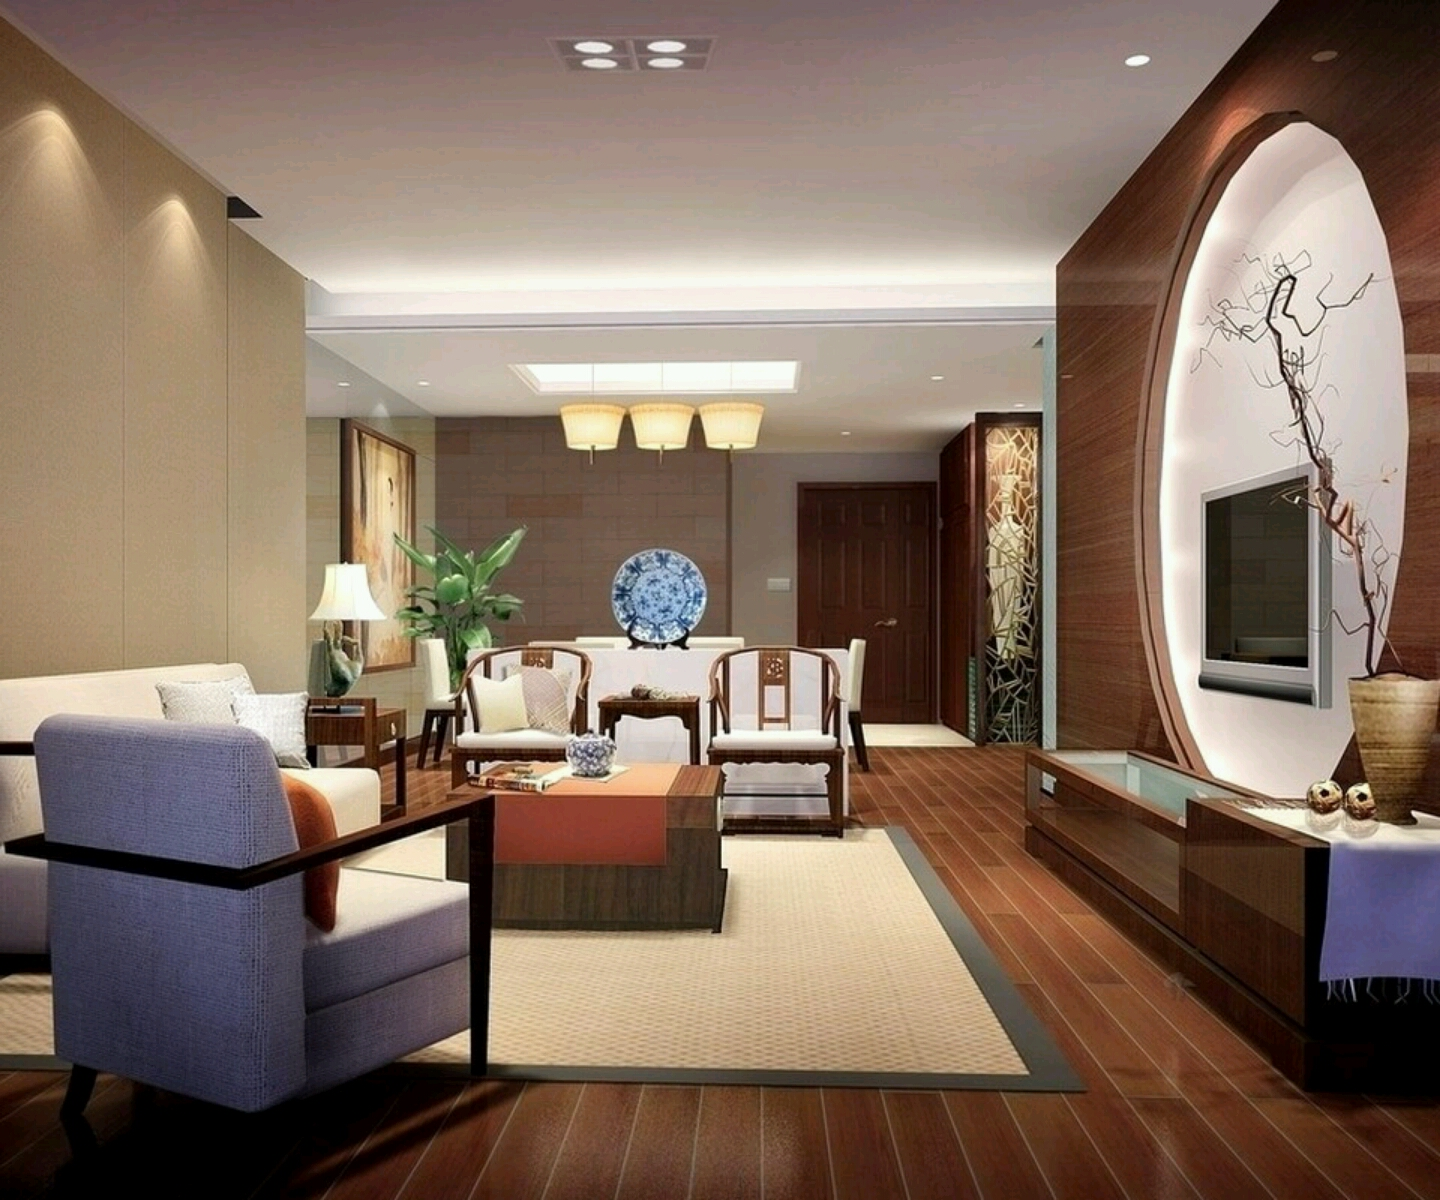 Luxury homes interior decoration living room designs ideas modern home designs Interior design ideas luxury homes